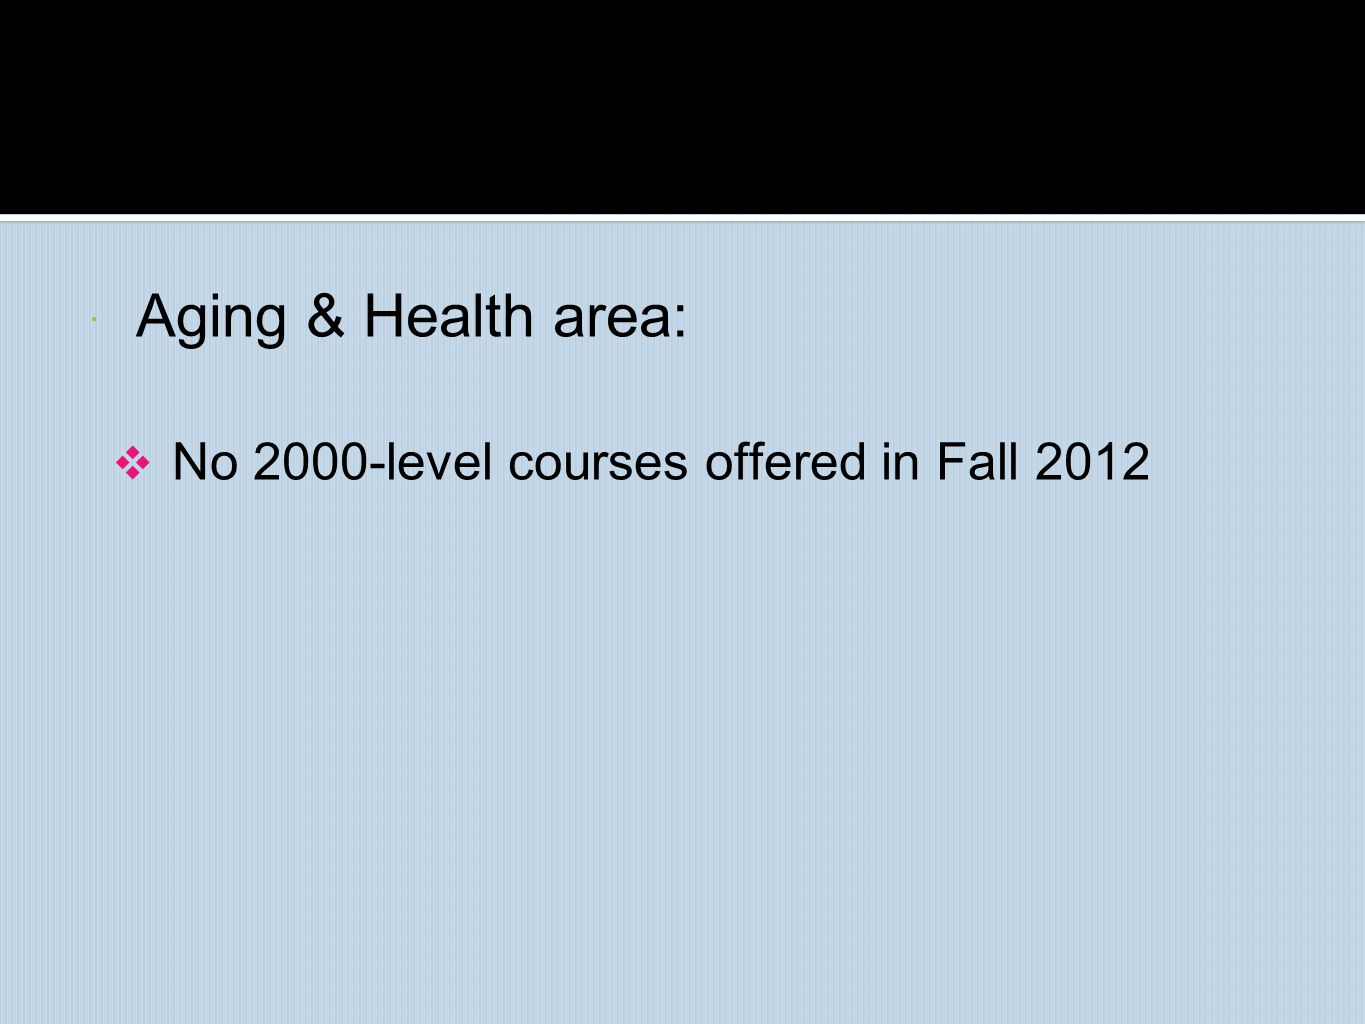 Aging & Health area: No 2000-level courses offered in Fall 2012